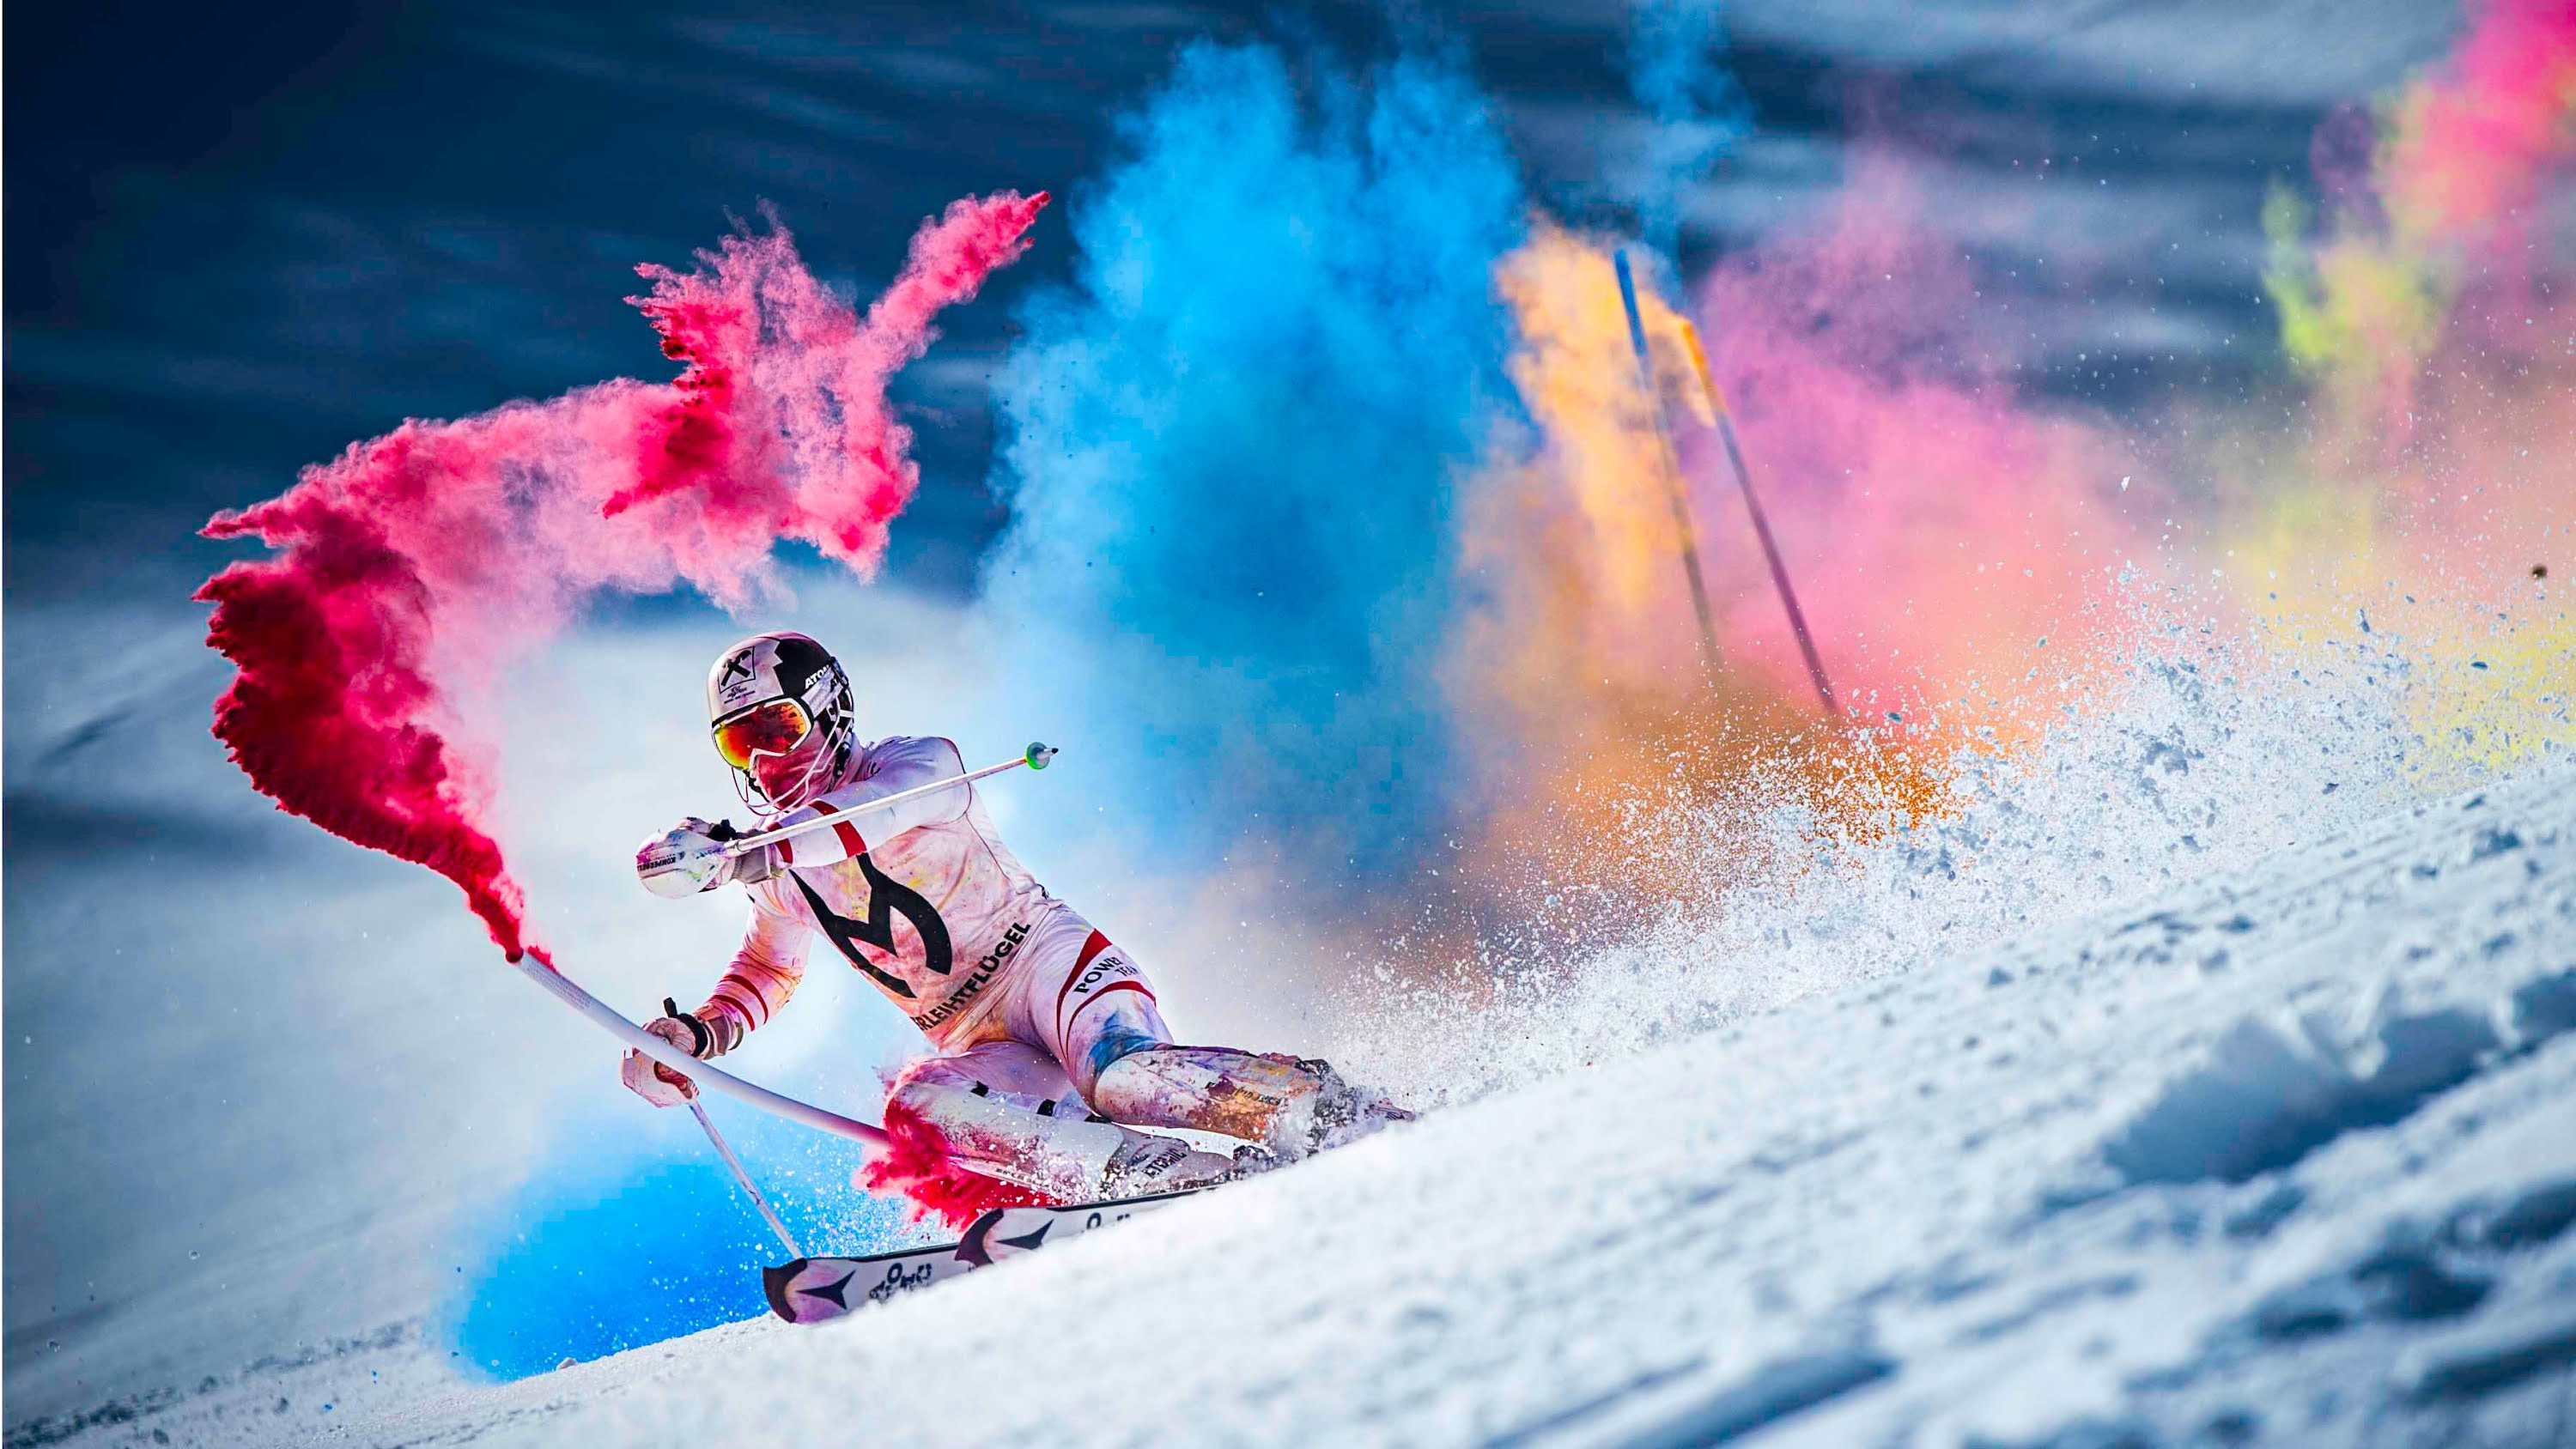 Skiing High Definition Wallpapers